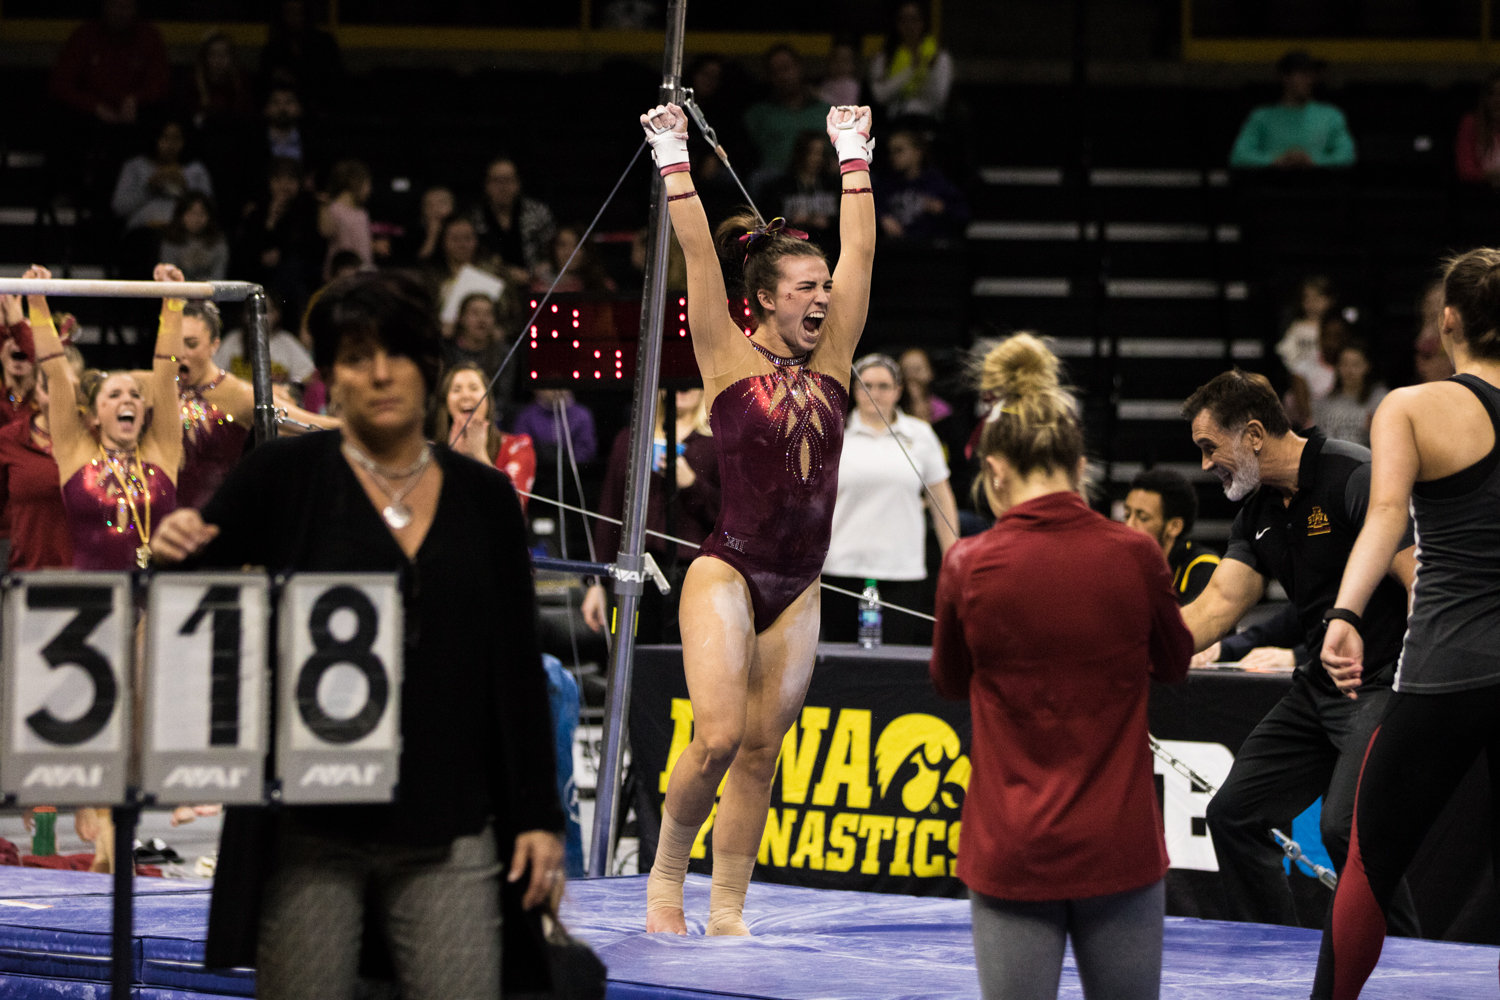 Iowa+State%27s+Meaghan+Sievers+celebrates+during+a+women%27s+gymnastics+meet+between+Iowa+and+Iowa+State+at+Carver-Hawkeye+Arena+on+Friday%2C+March+1%2C+2019.+Sievers+scored+9.875+on+uneven+bars.+The+Hawkeyes%2C+celebrating+senior+night%2C+fell+to+the+Cyclones%2C+196.275-196.250.